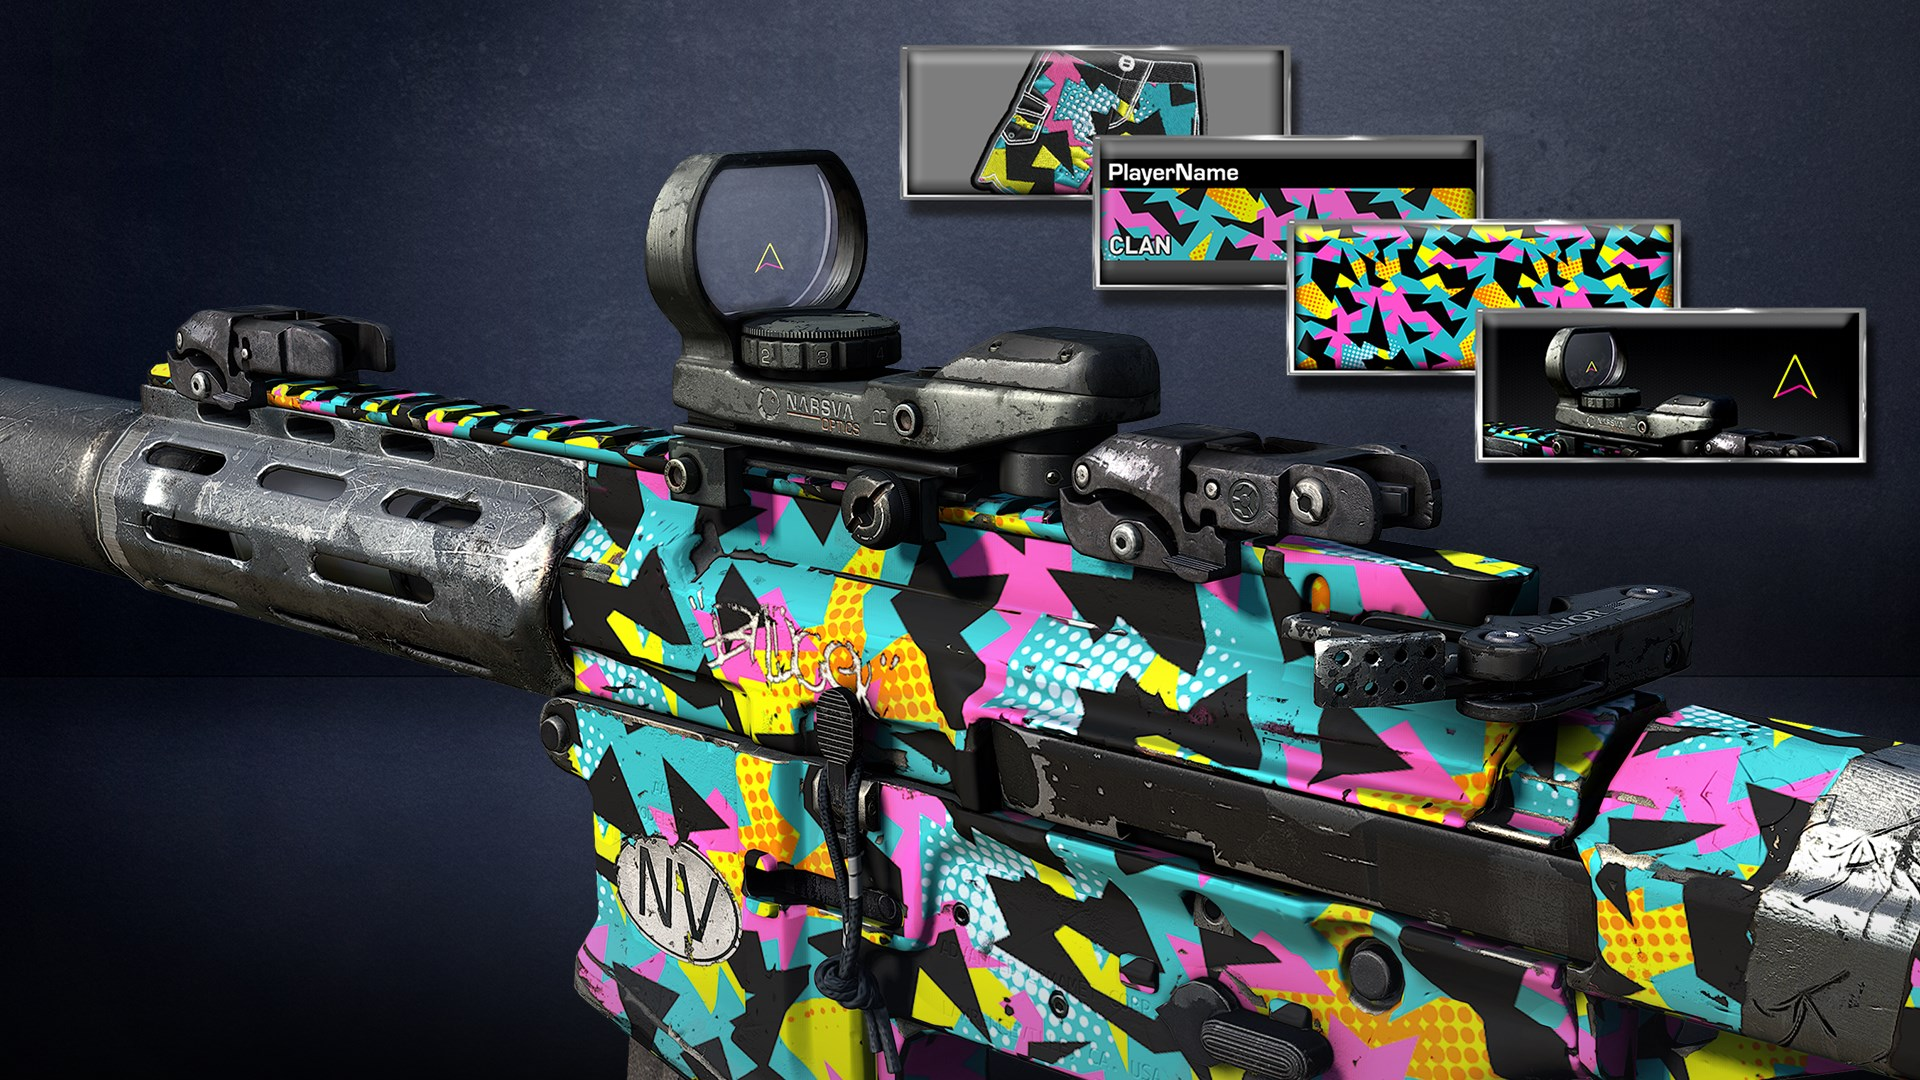 Paquete 1987 de Call of Duty®: Ghosts